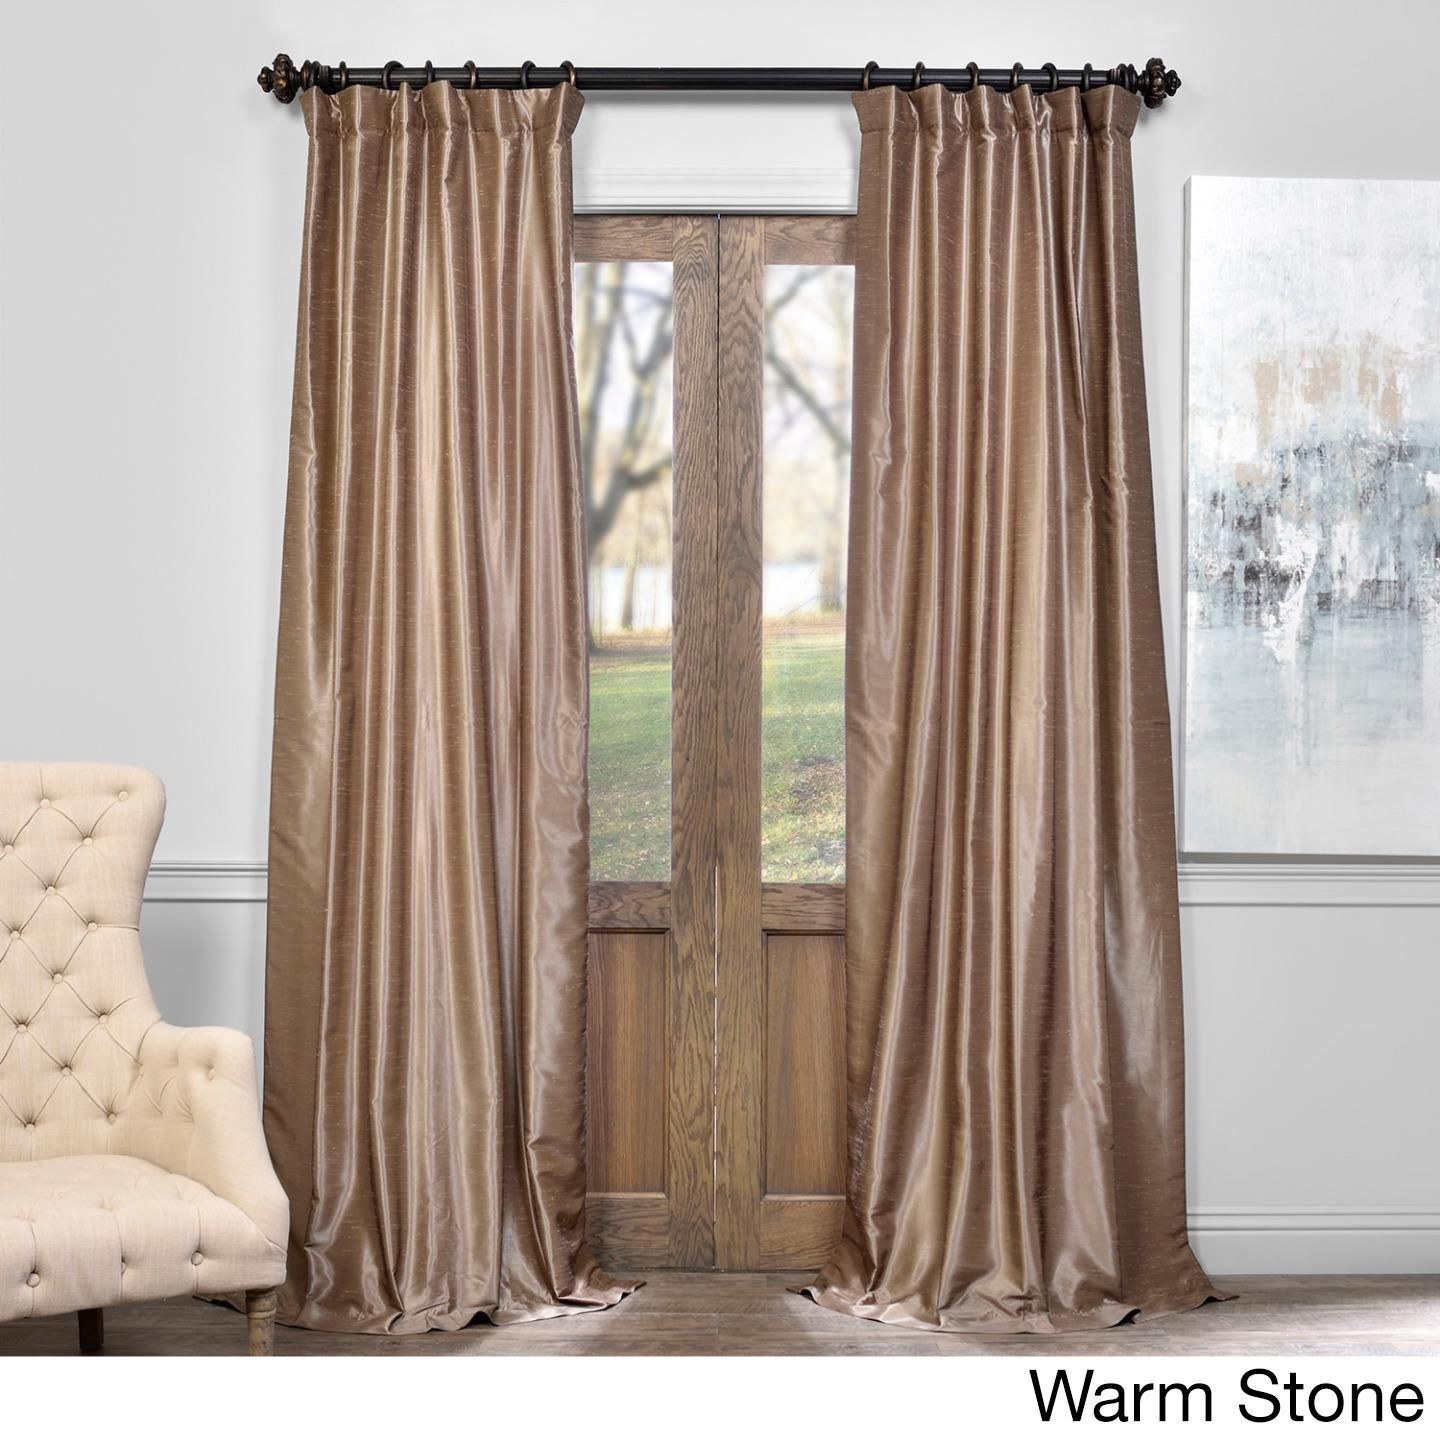 garden dupioni true vintage overstock curtain today faux blackout product fabrics exclusive free curtains home textured silk shipping